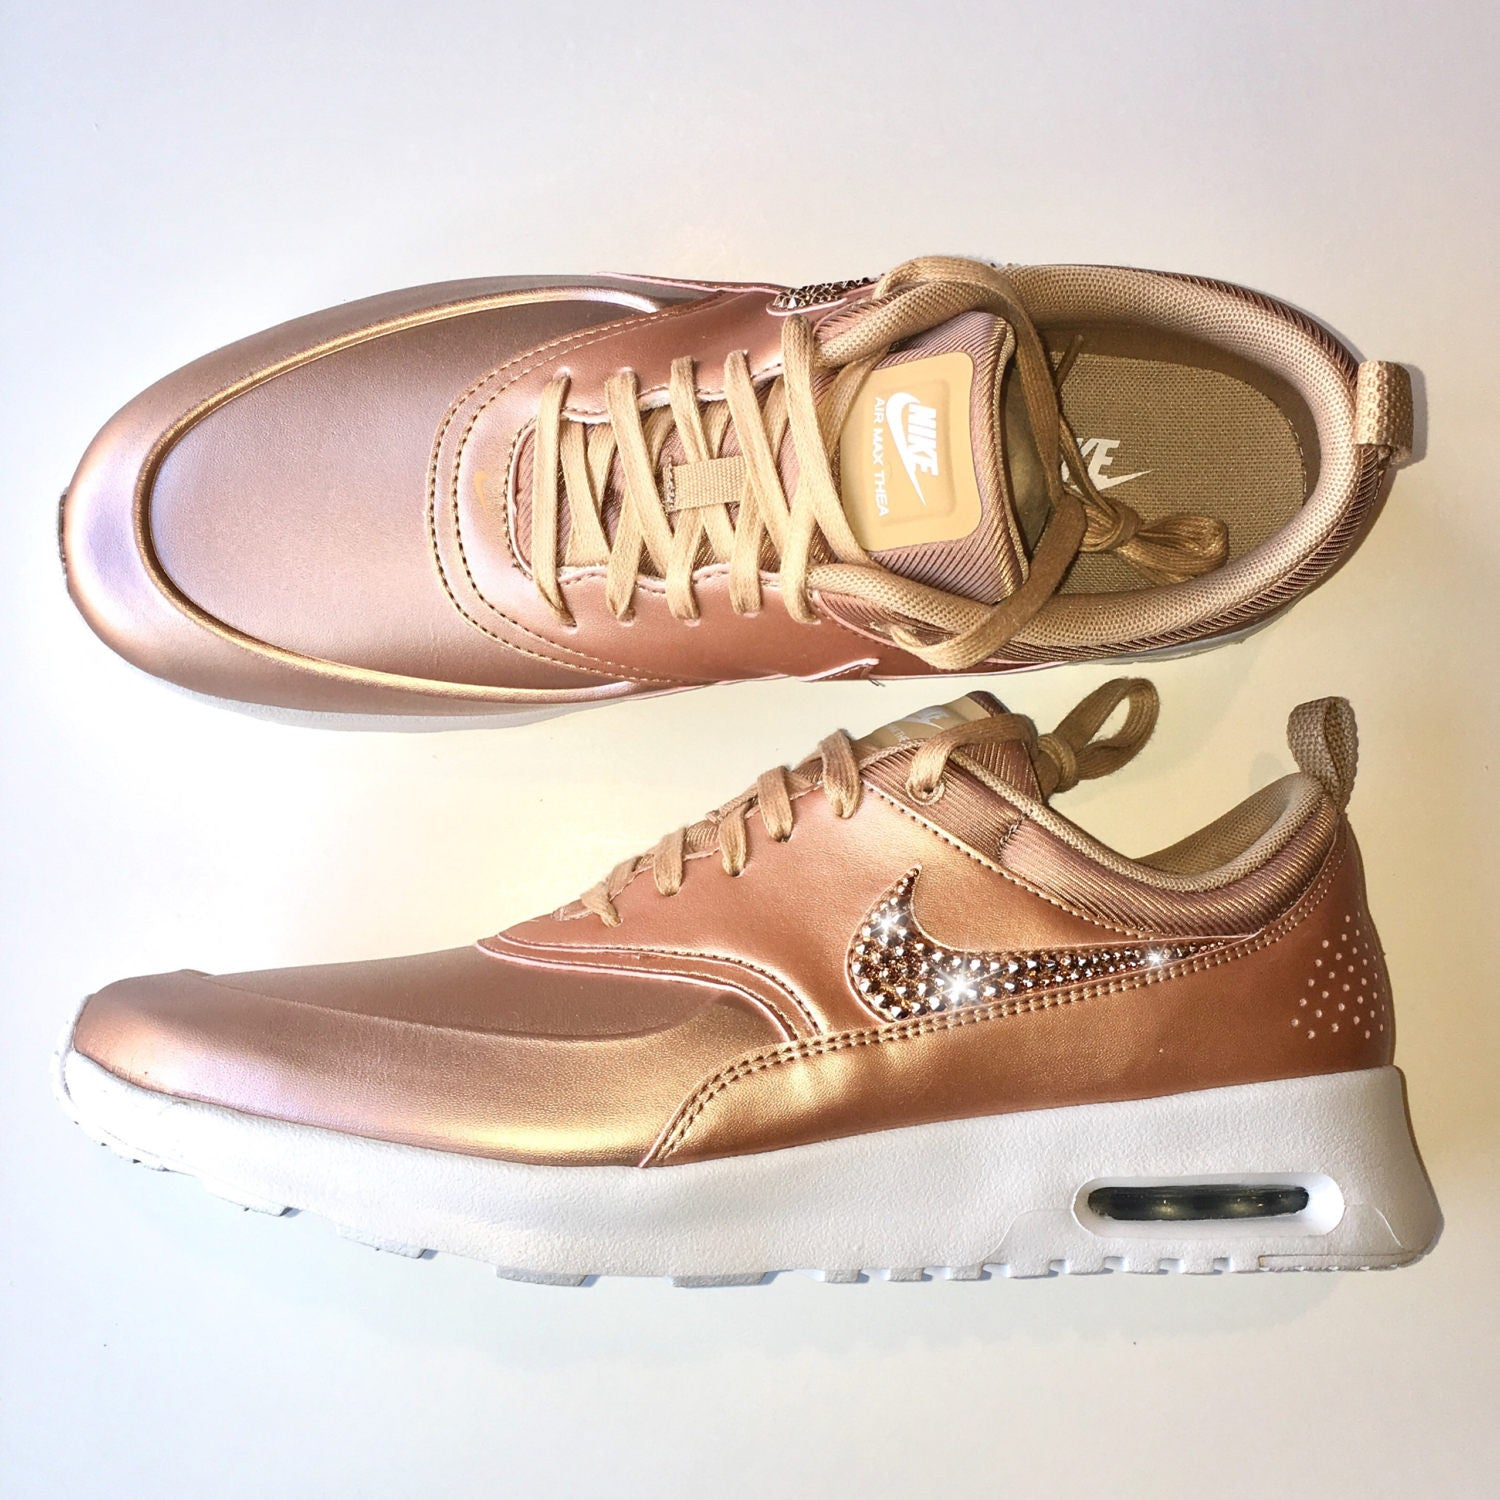 check out eeefc 566fa ROSE GOLD Bling Nike Air Max Thea Metallic SE Shoes with Swarovski Crystals    Bedazzled with ...